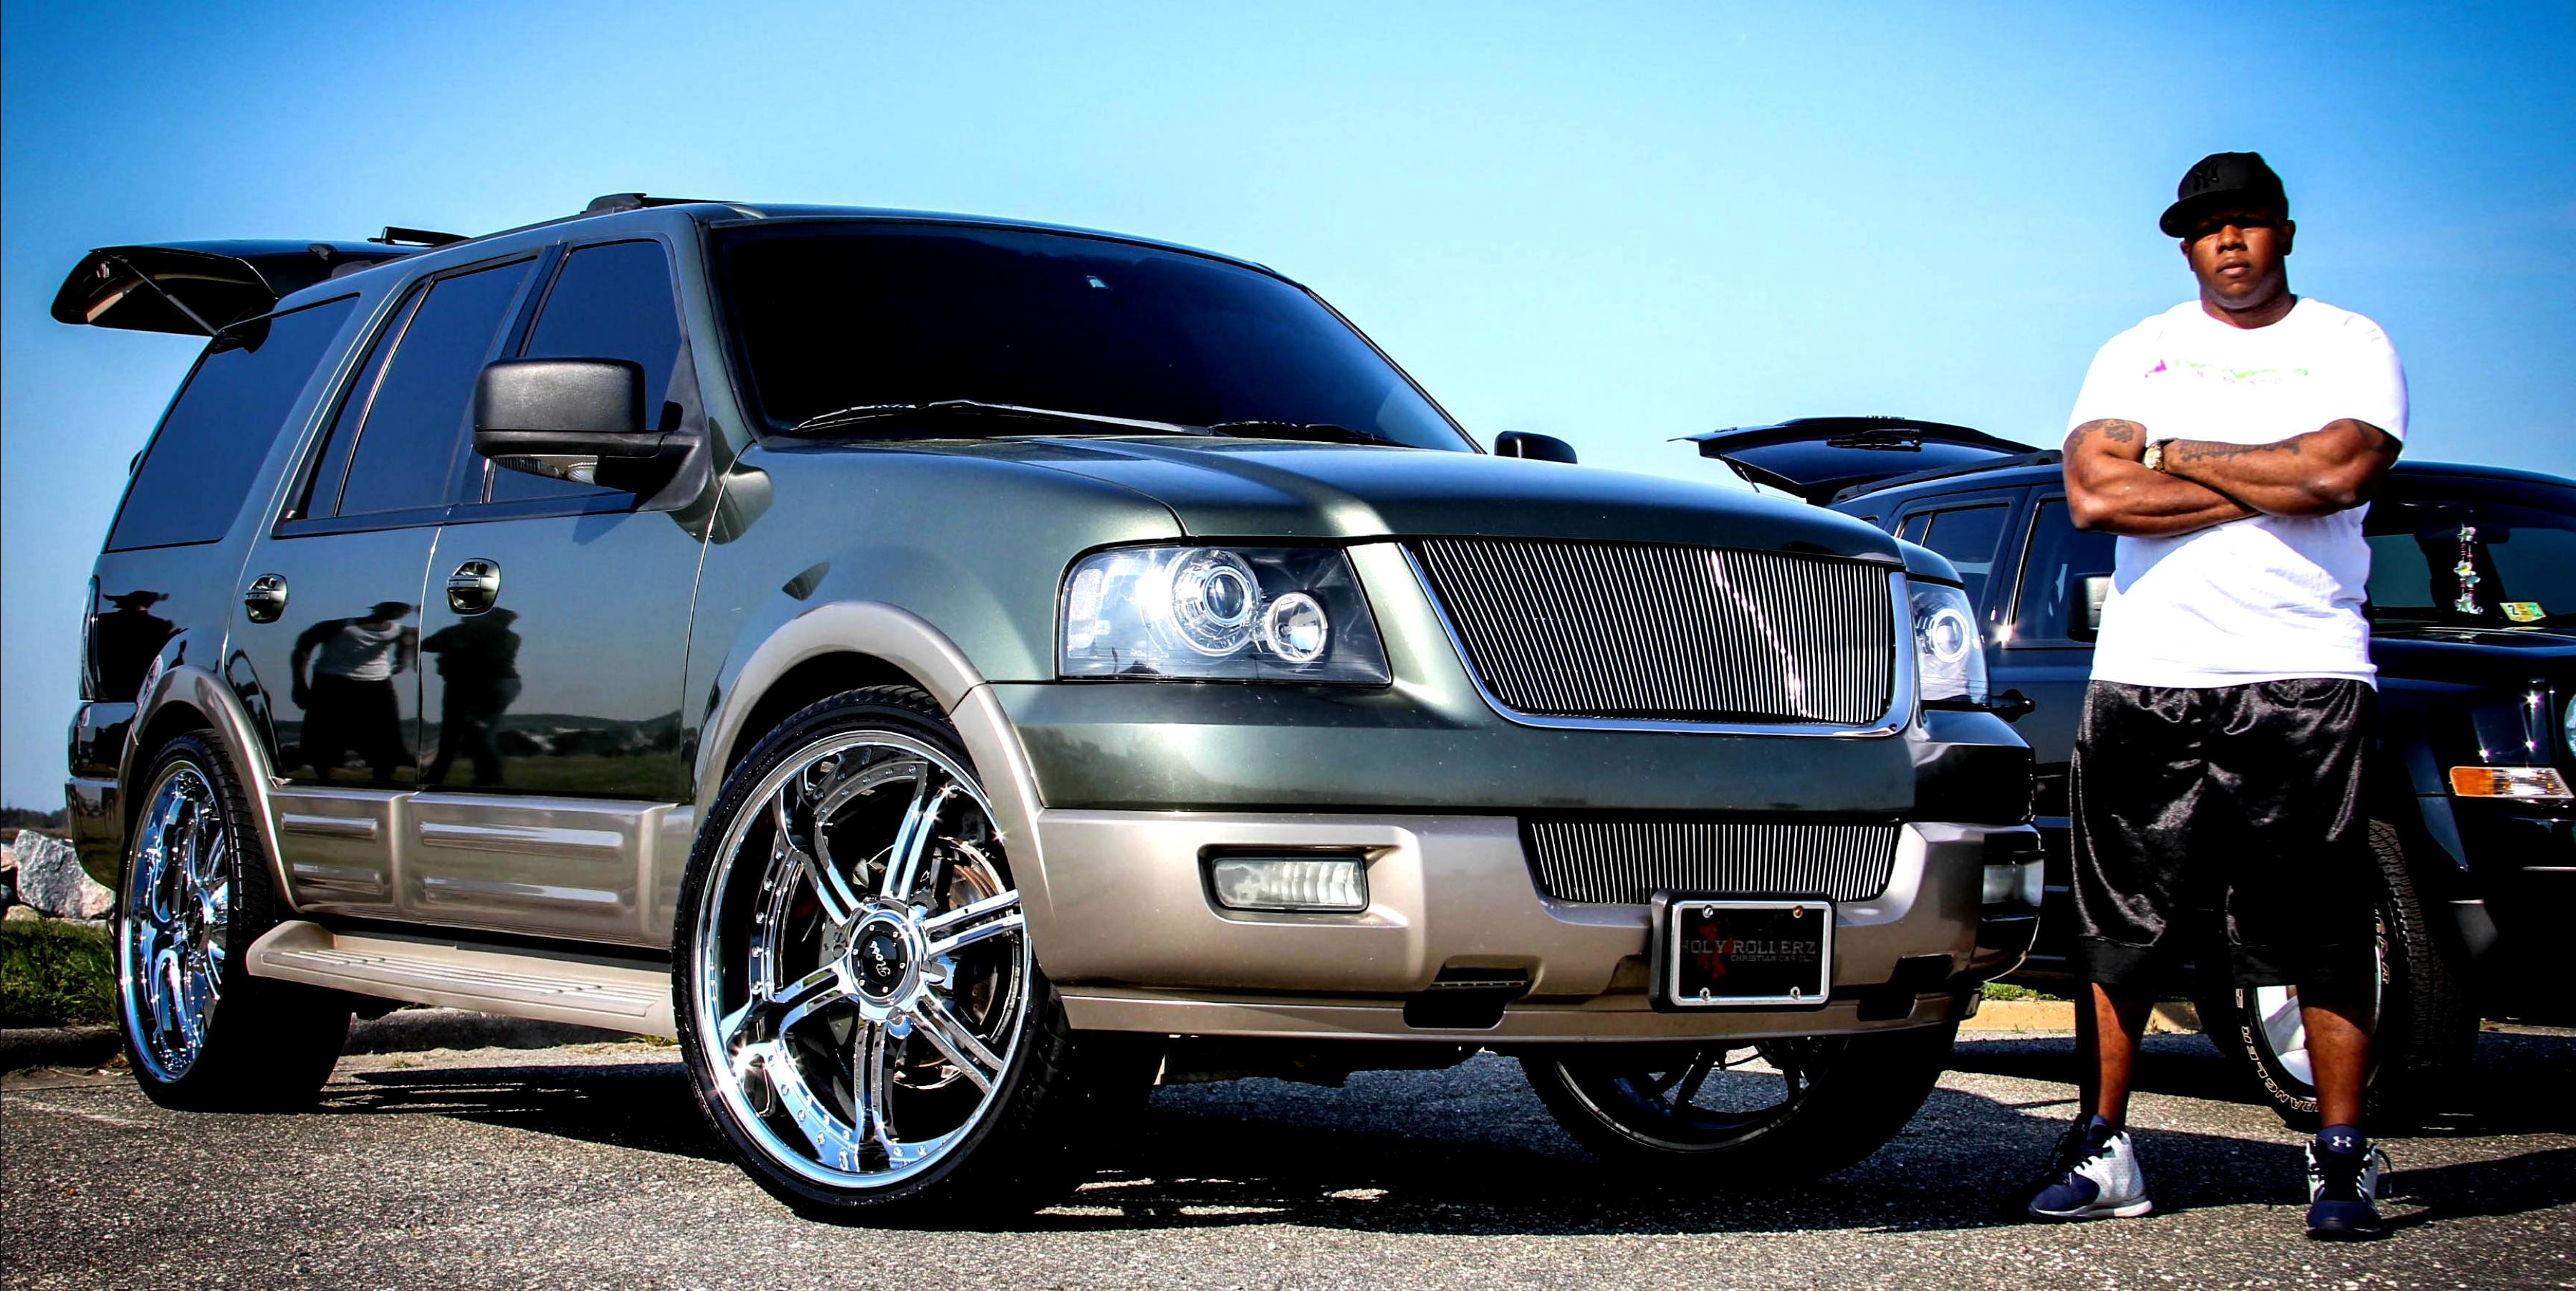 Ford Expedition 2002 #52